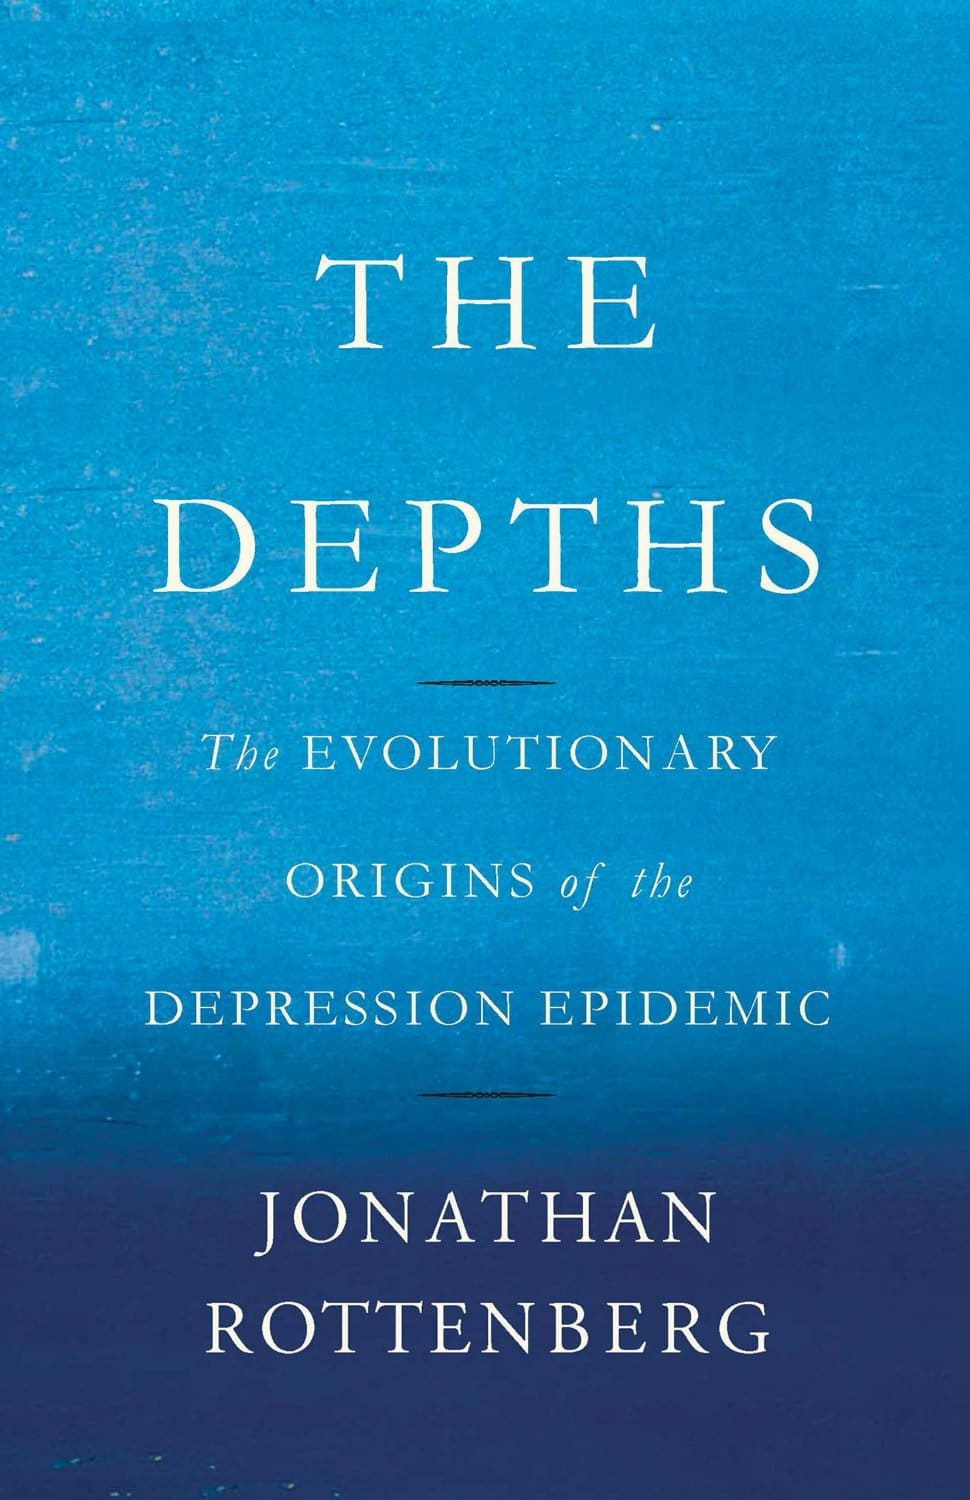 The depths, book cover by Jonathan rottenberg.